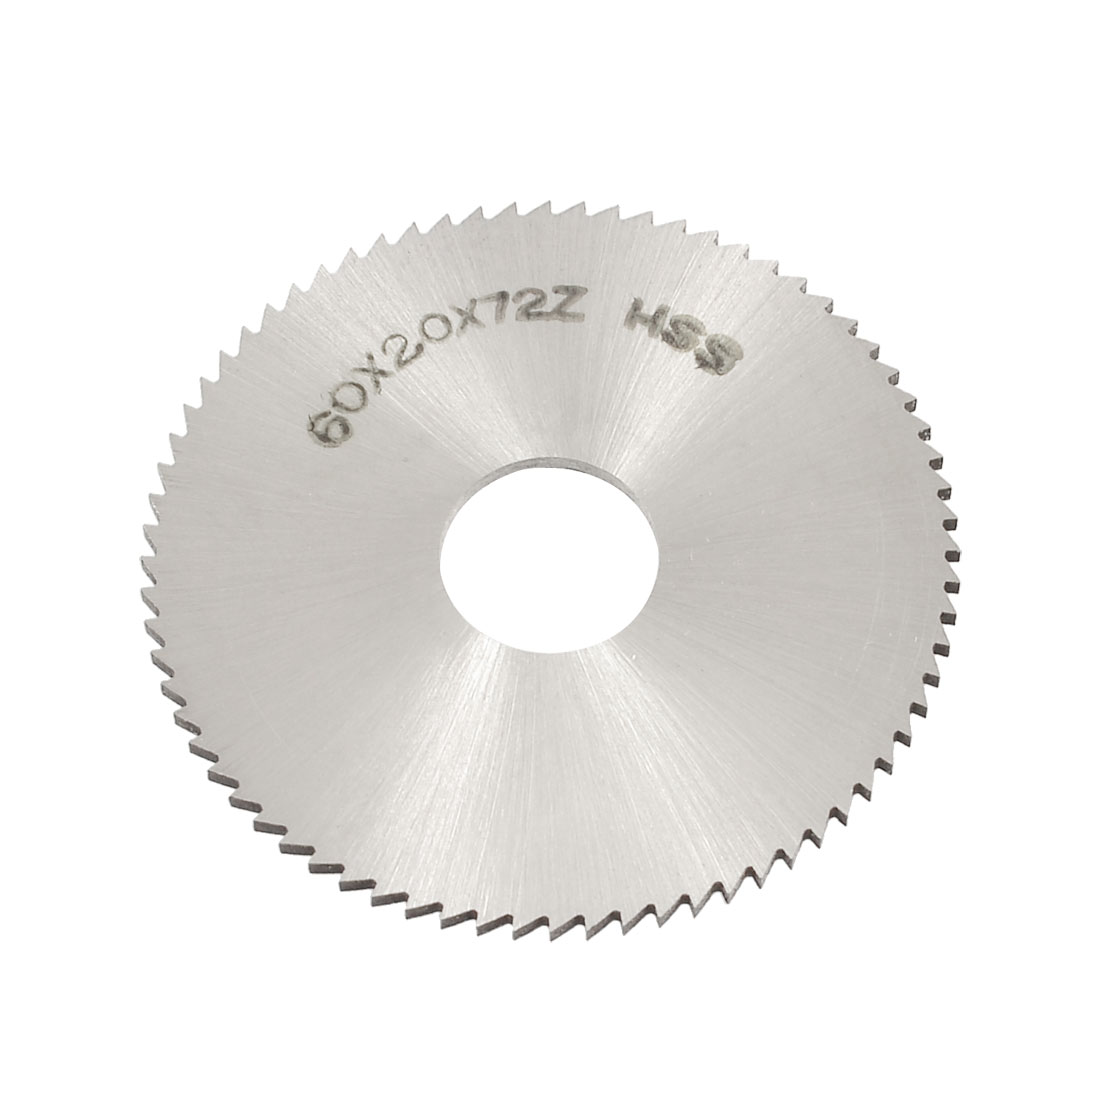 60mm OD 2mm Thickness 72T HSS Circular Slitting Saw